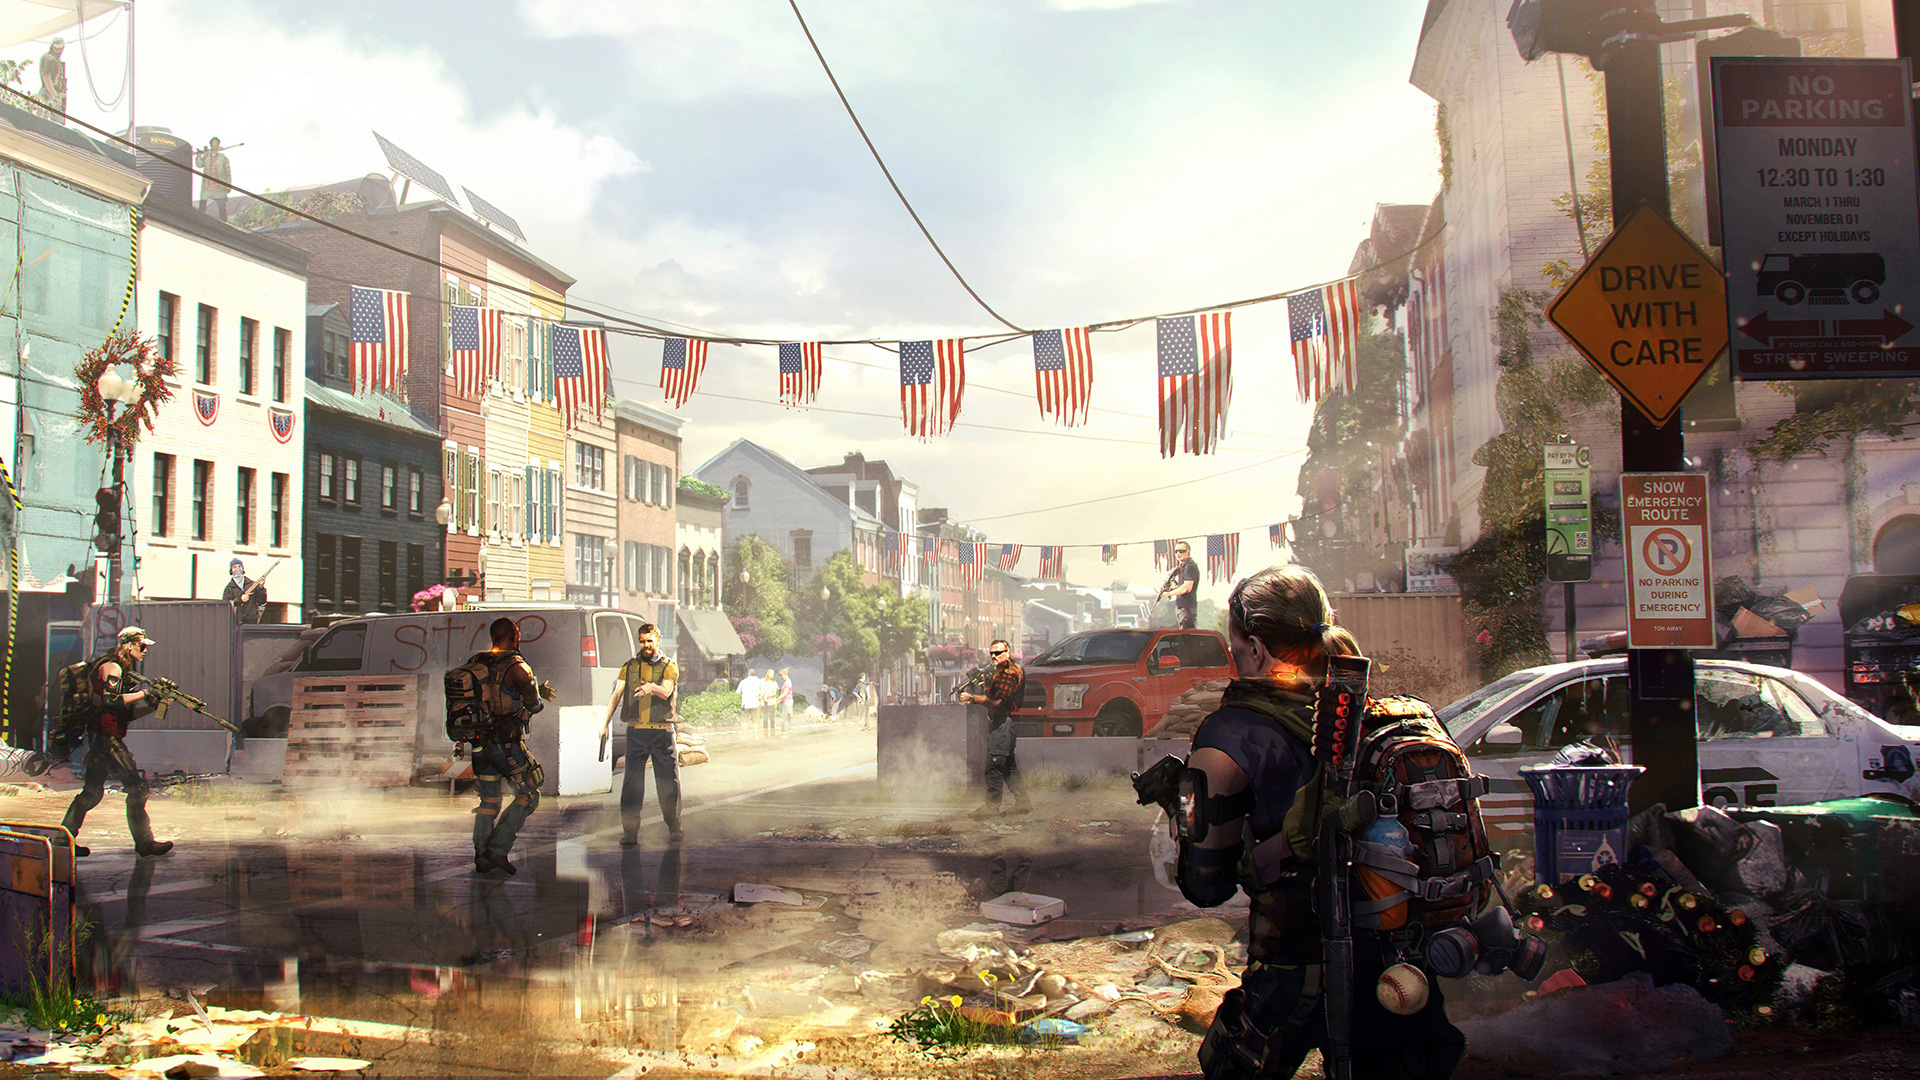 Tom clancy 39 s the division 2 wallpapers in ultra hd 4k for Div p